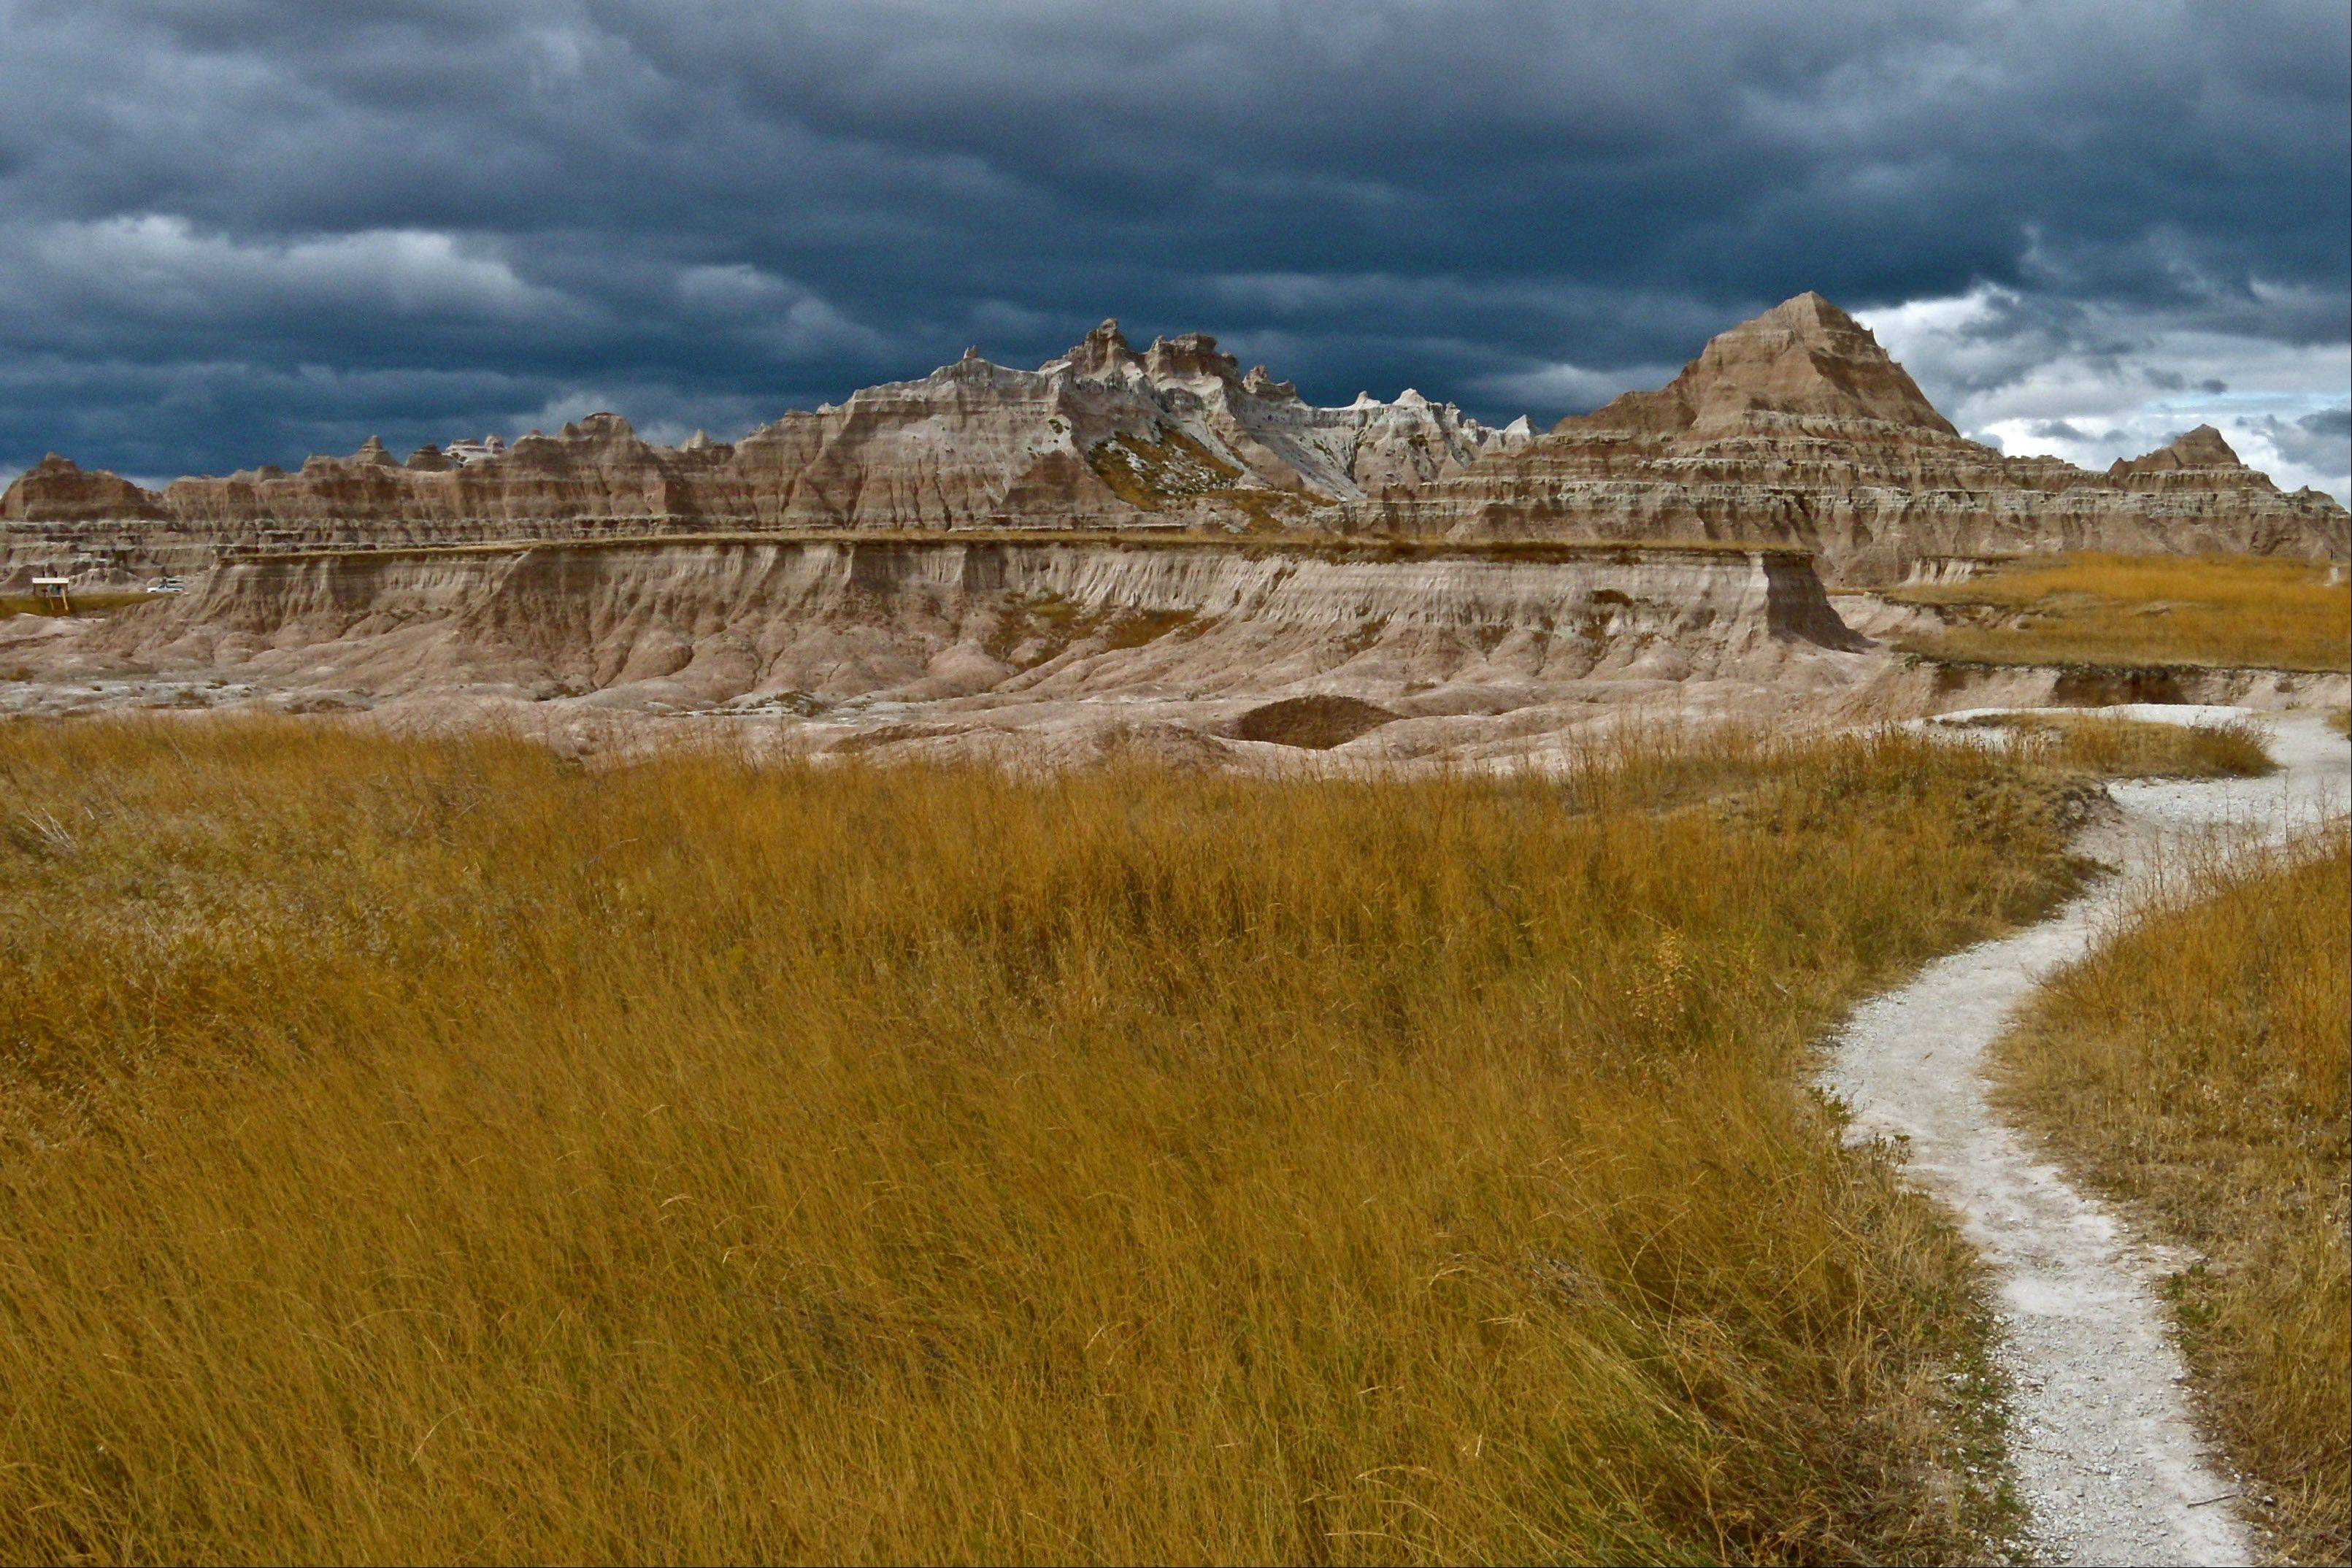 I took this picture while hiking a trail in Badlands National Park, South Dakota. It looked like we were in for a storm, but it blew by and rained on another part of the park.